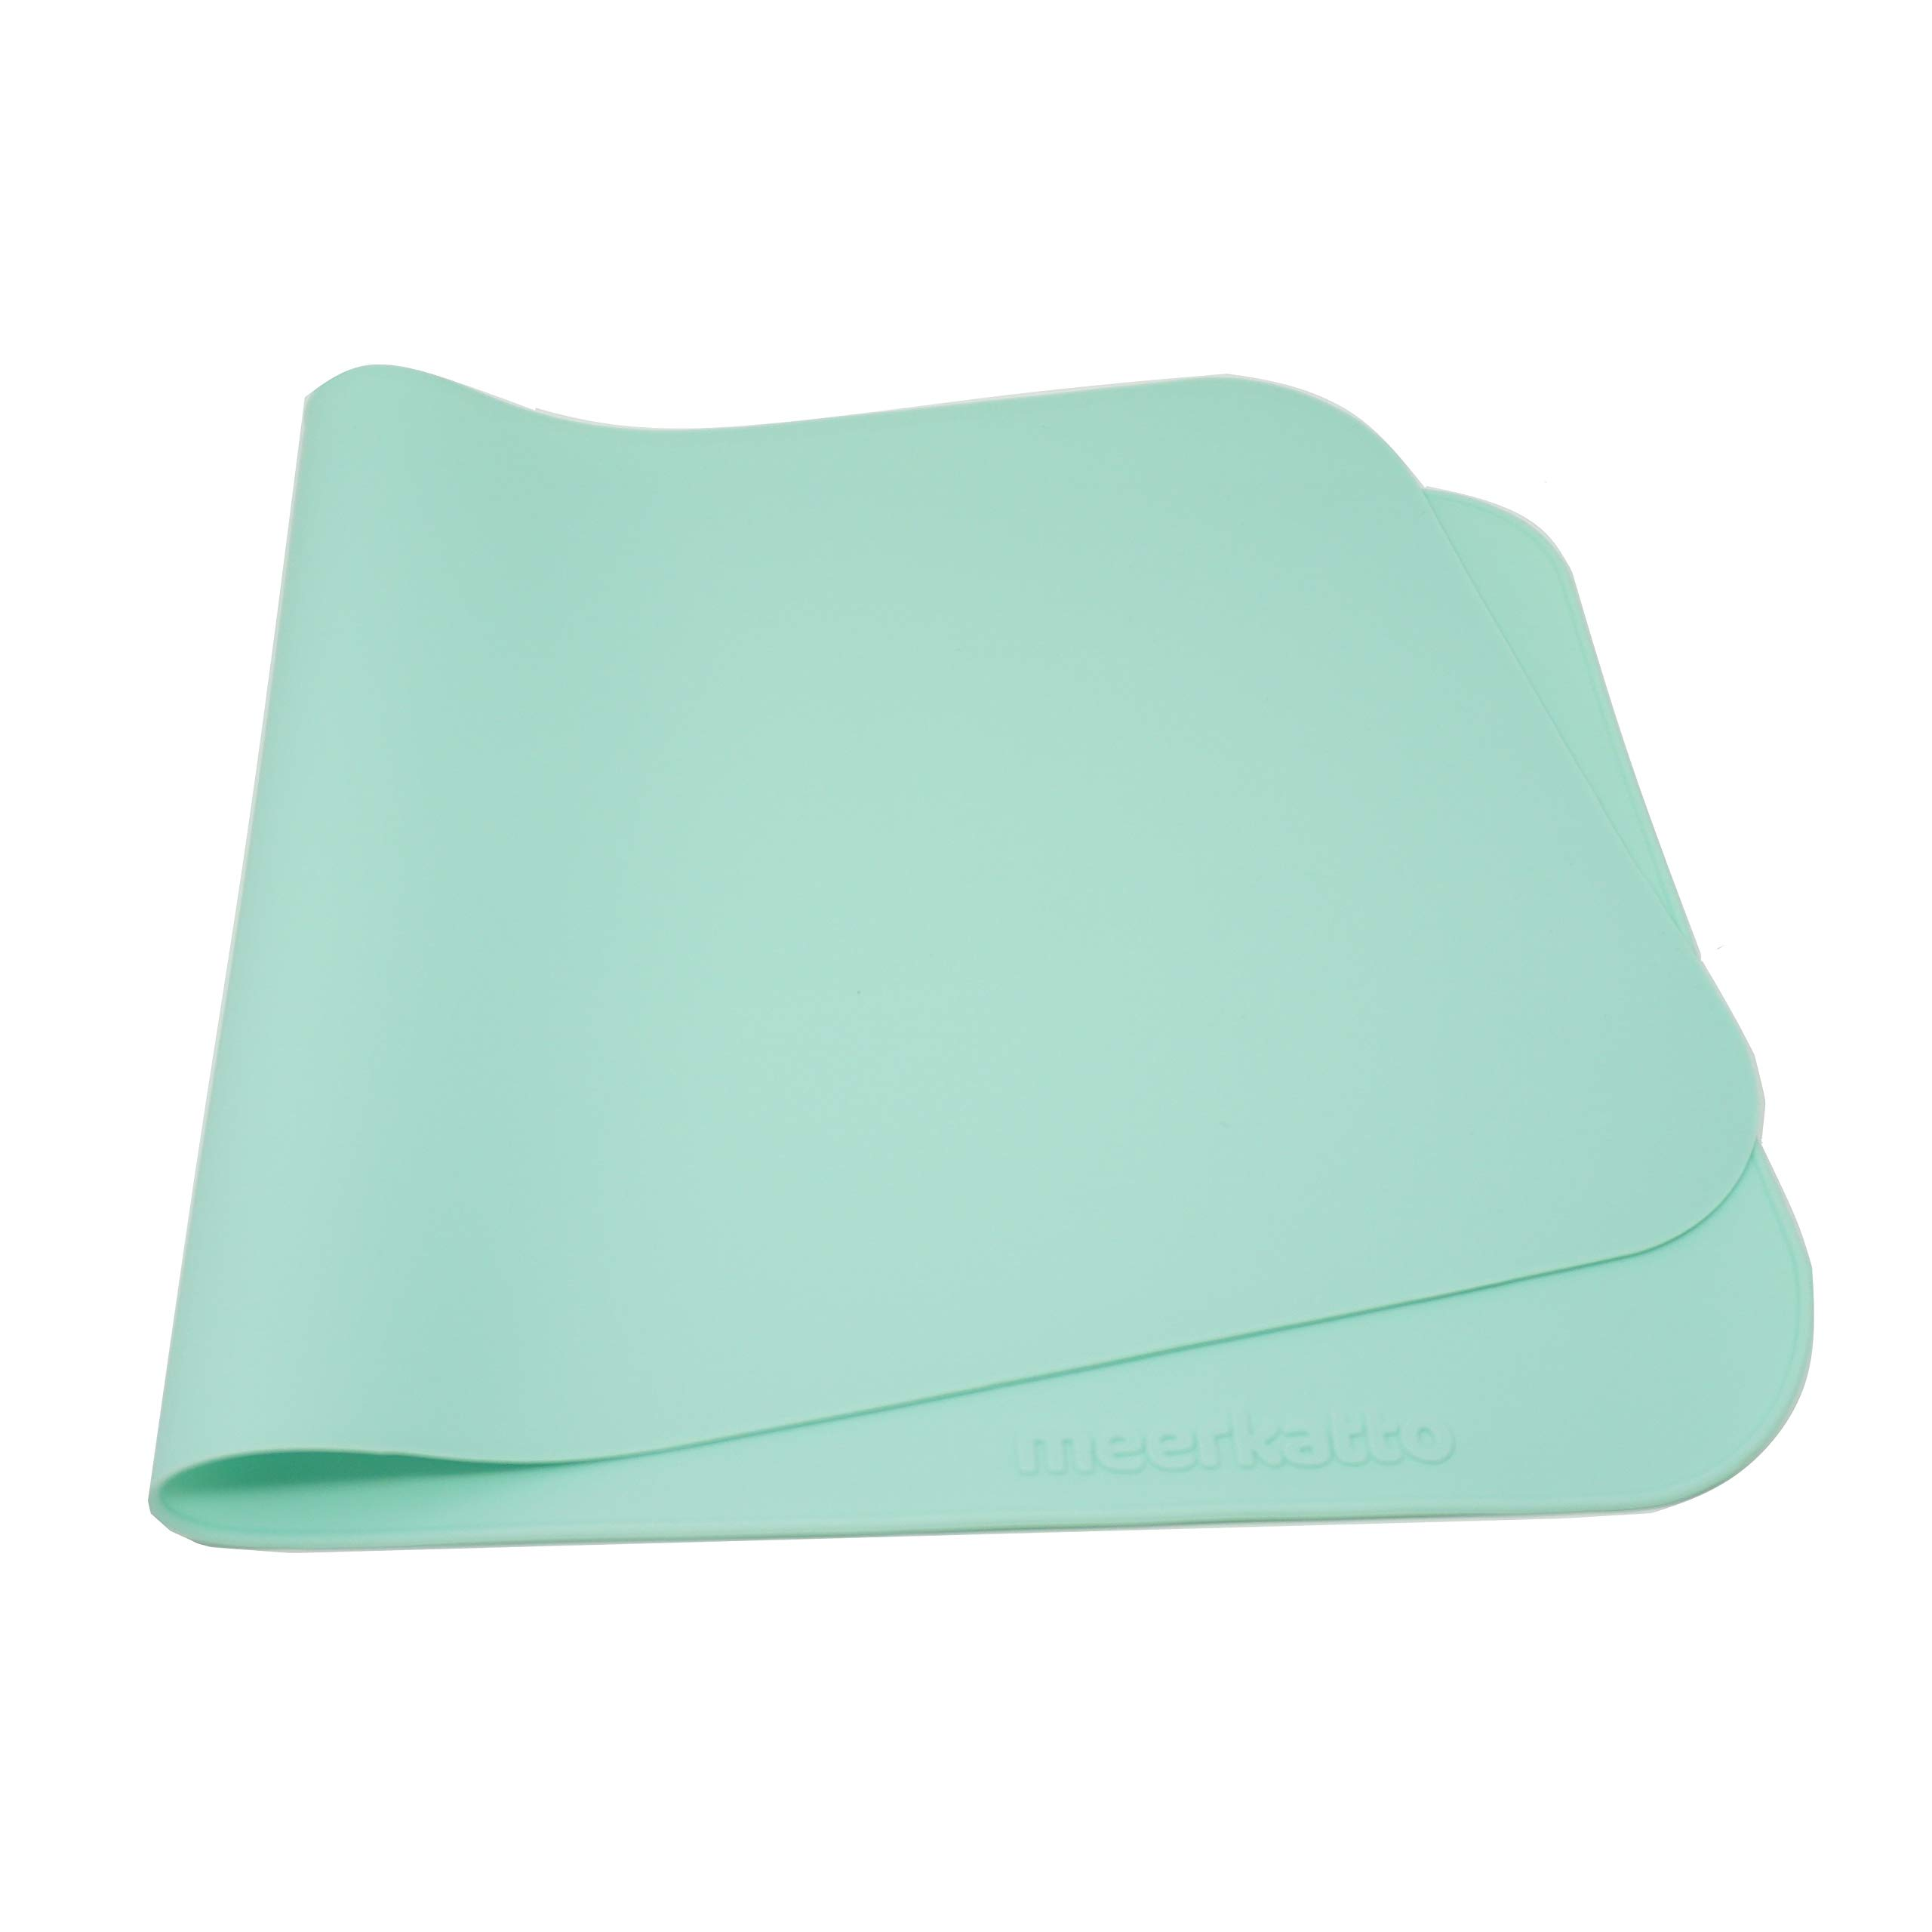 Meerkatto 100% Silicone Waterproof Changing Pad Liner (Mint) by Meerkatto